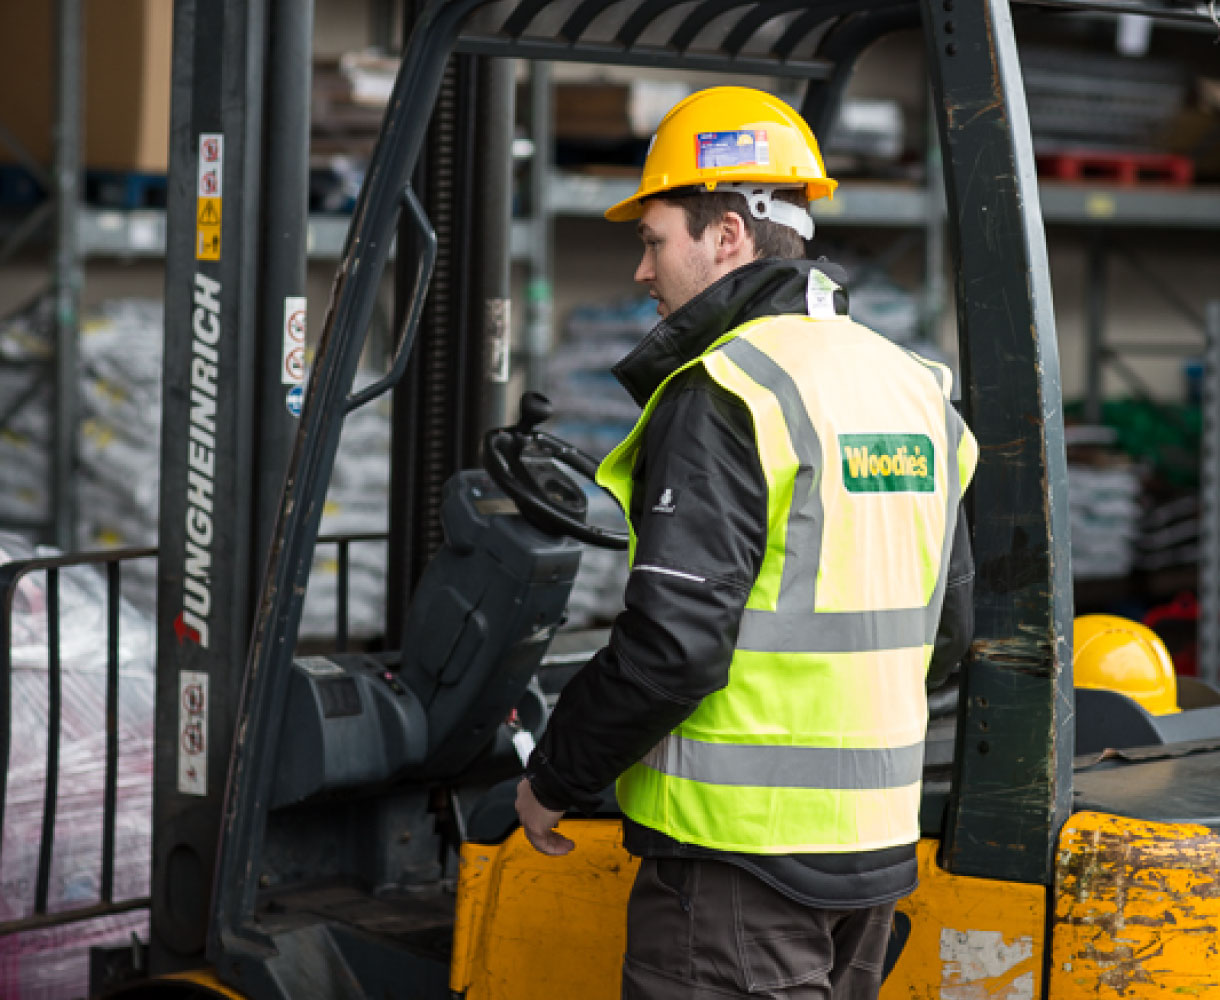 Principle brand agency Dublin Woodie's Brand Project loading bay forklift driver